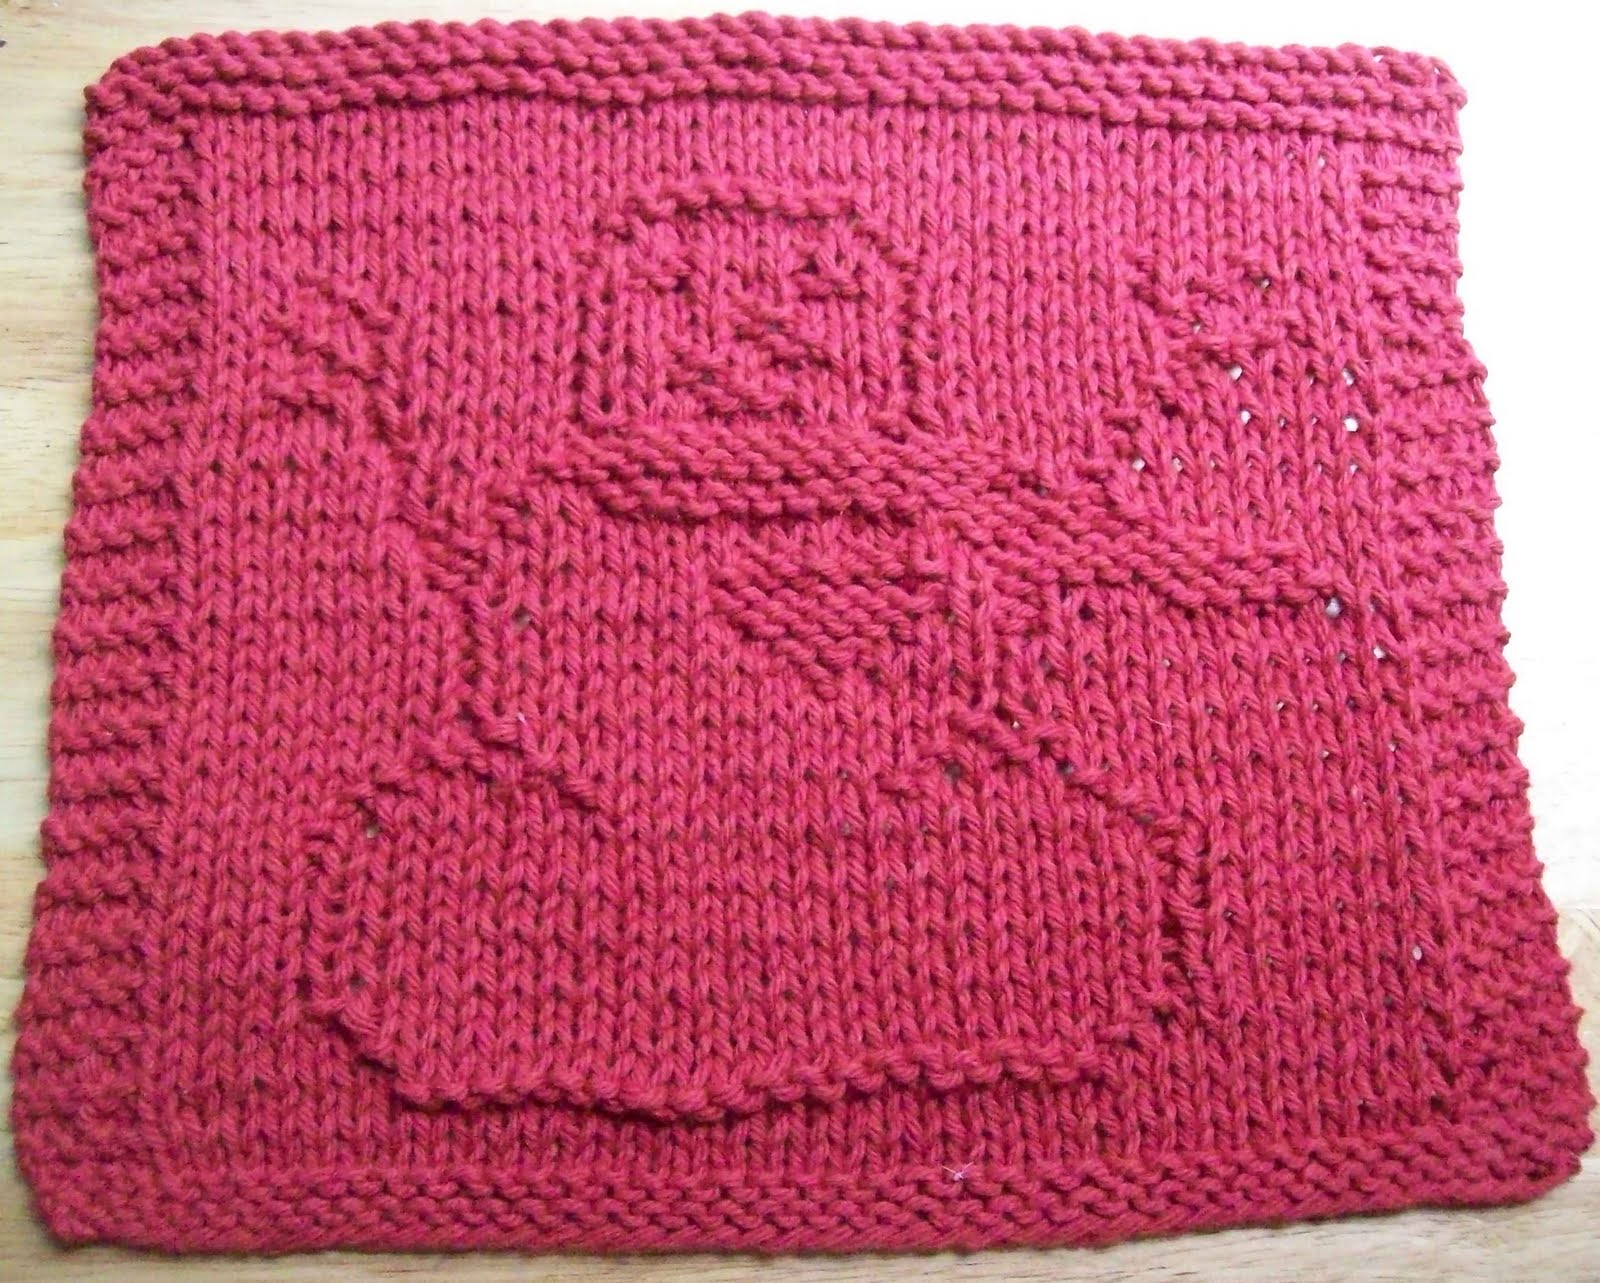 Knitted Dishcloth Patterns : DigKnitty Designs: Snowman With Heart Knit Dishcloth Pattern